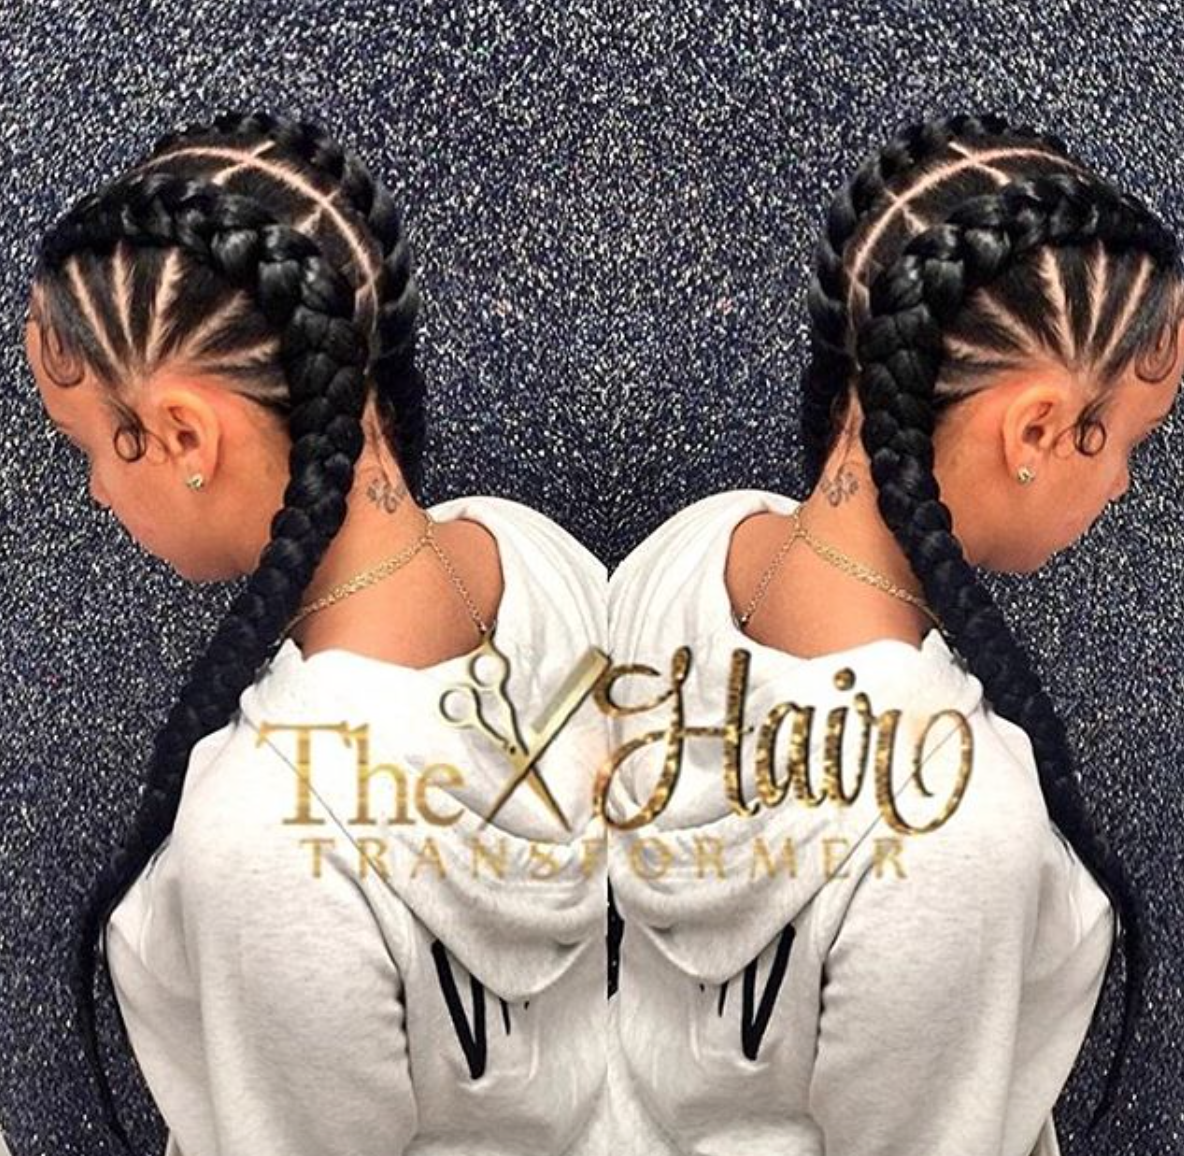 Cute cornrows via @the_hairtransformer - https ...